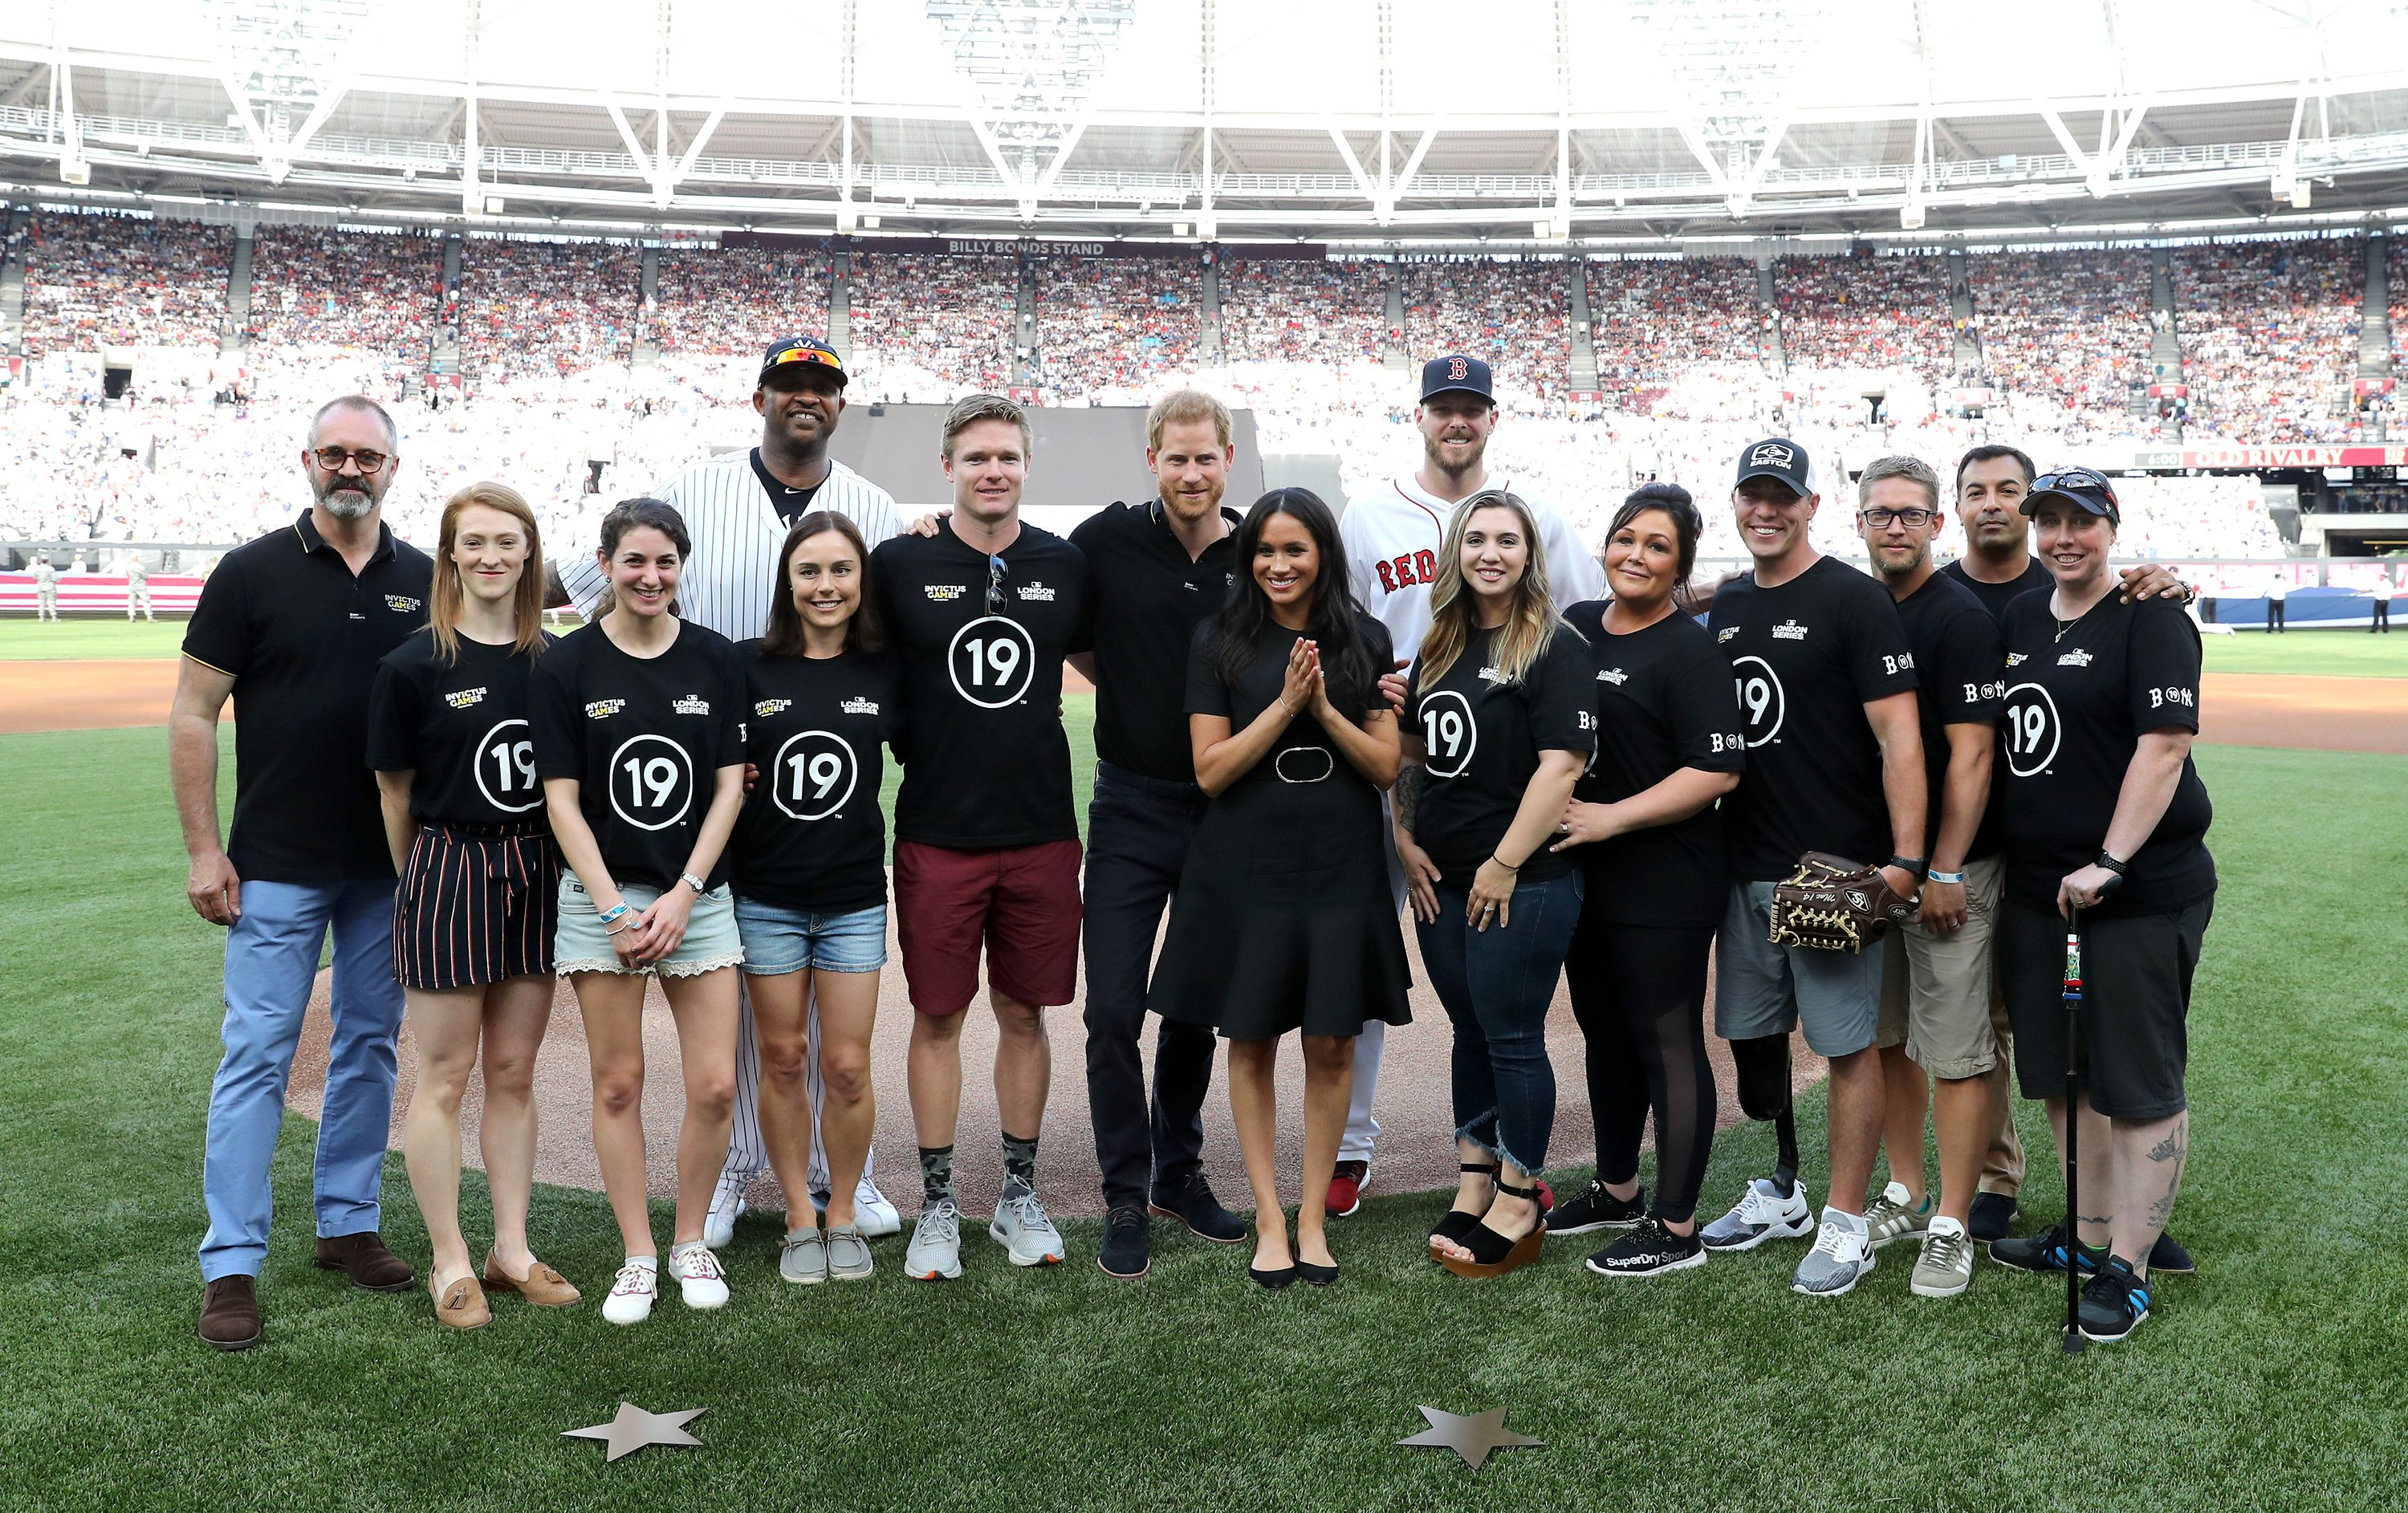 The Duke and Duchess of Sussex attend the Boston Red Sox vs New York Yankees game in support of the Invictus Games Foundation